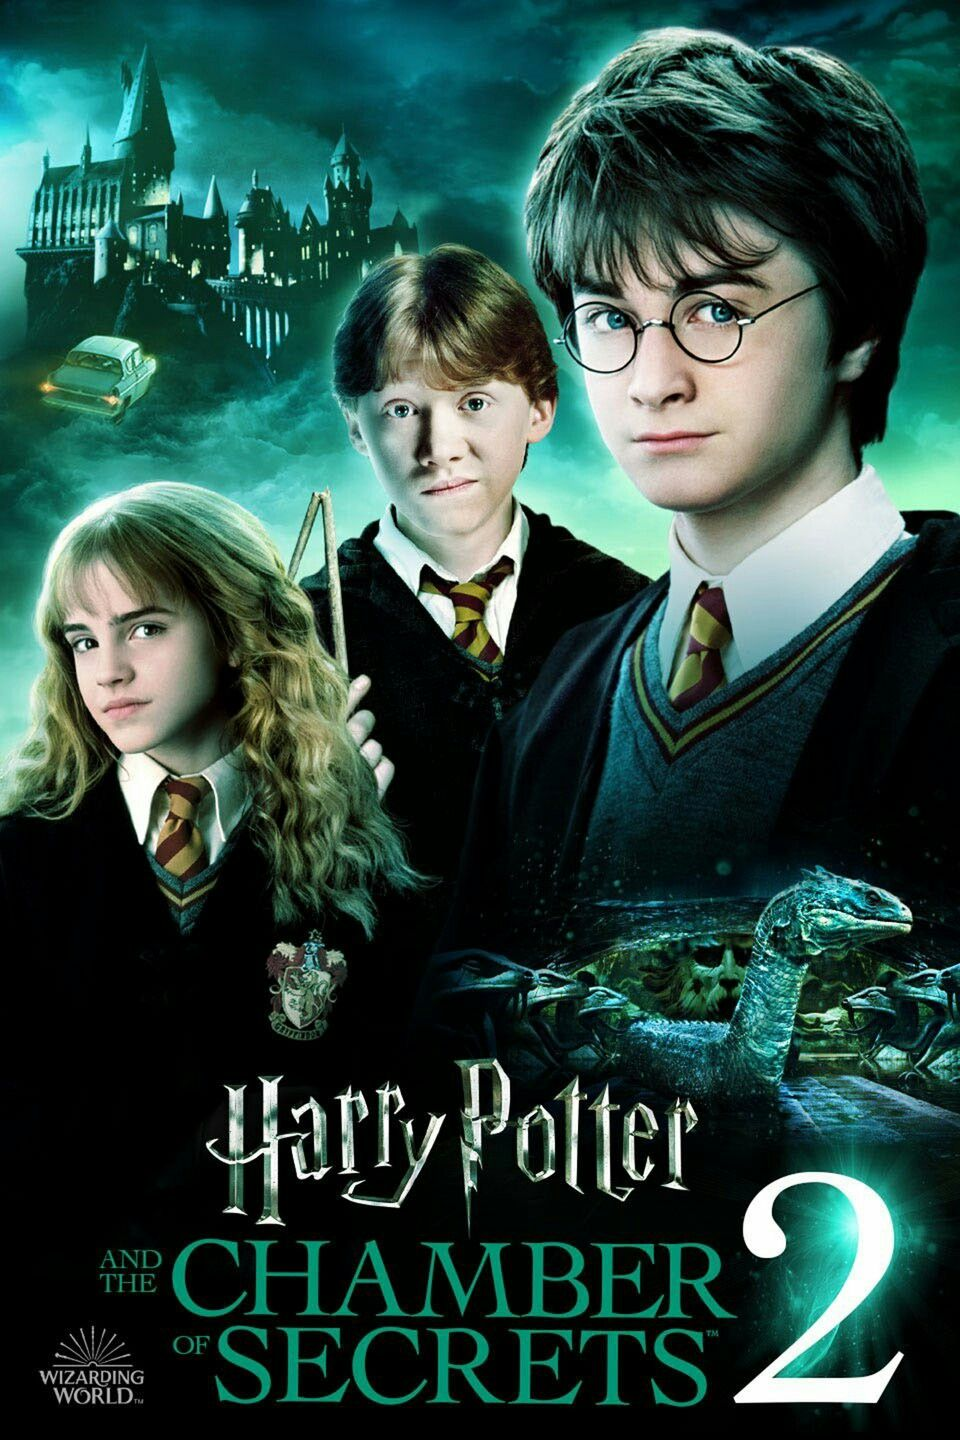 Harry Potter And The Chamber Of Secrets Harry Potter Films Harry Potter Movie Posters Harry Potter Film